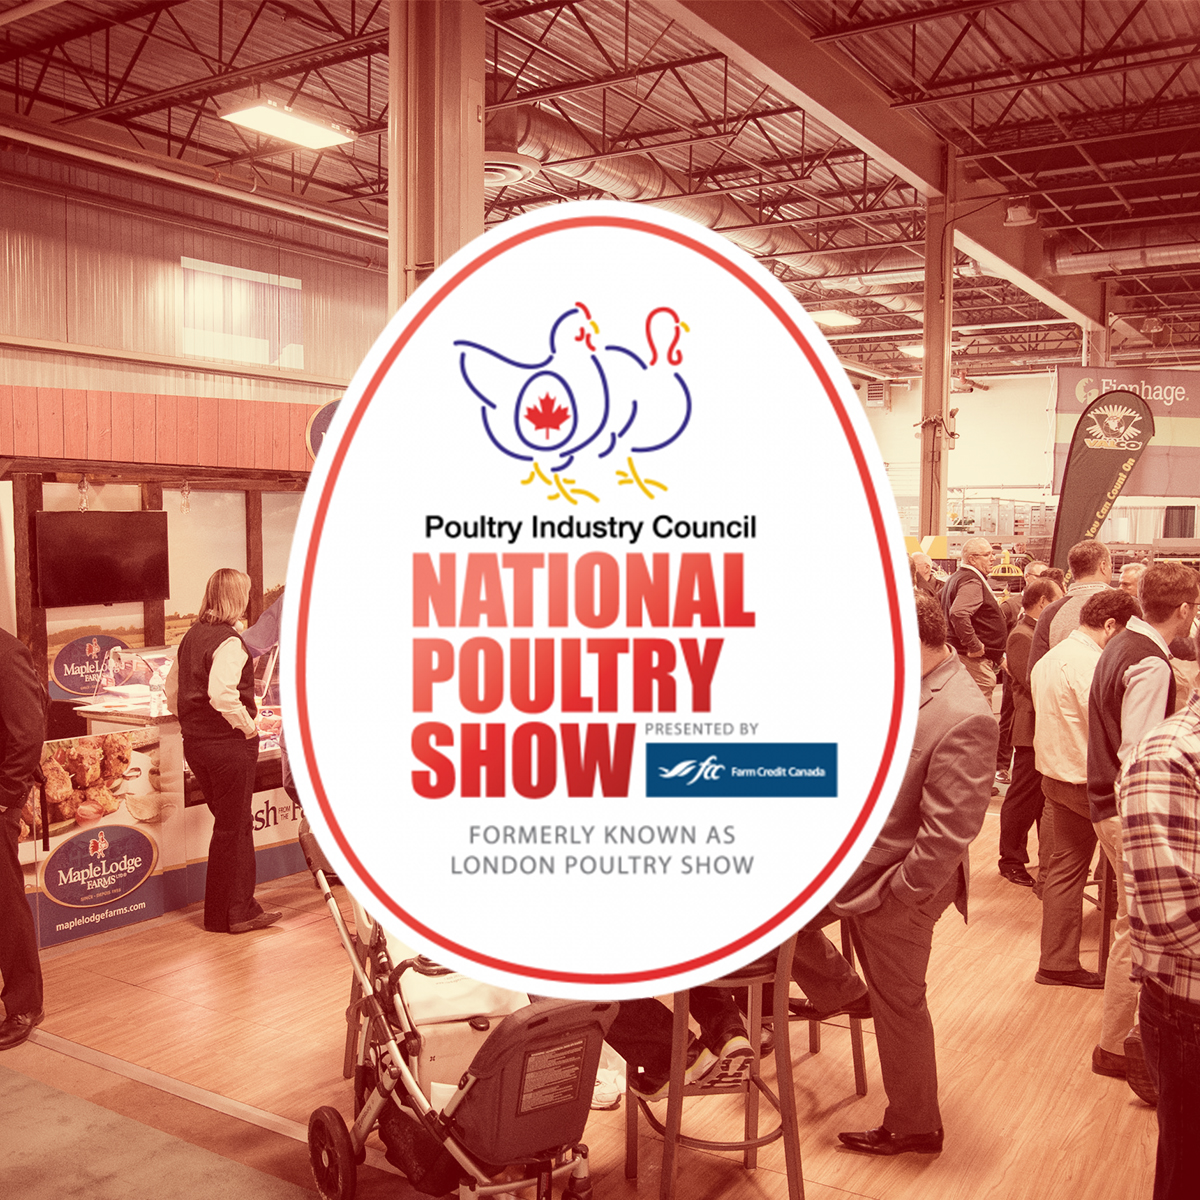 National Poultry Show Photo